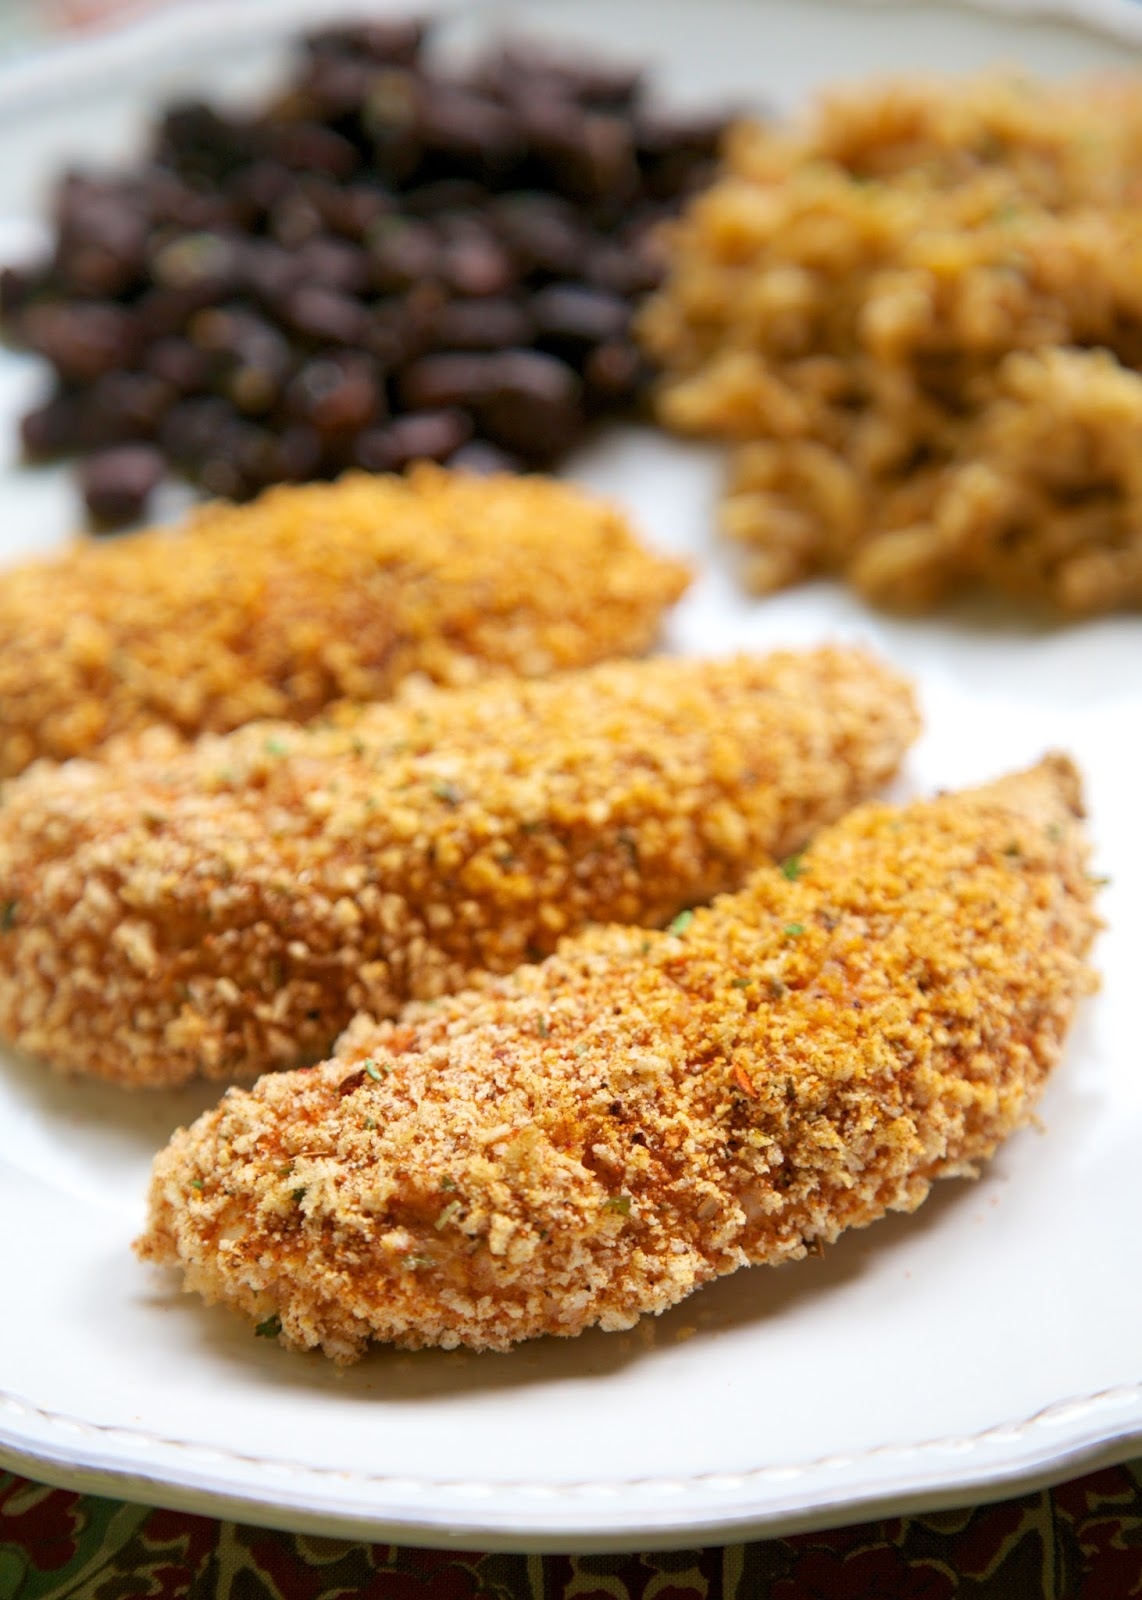 Cool Ranch Chicken Tenders recipe - chicken tenders coated in taco seasoning and ranch - baked not fried! Ready in 15 minutes!! Can coat tenders and freeze uncooked for later.